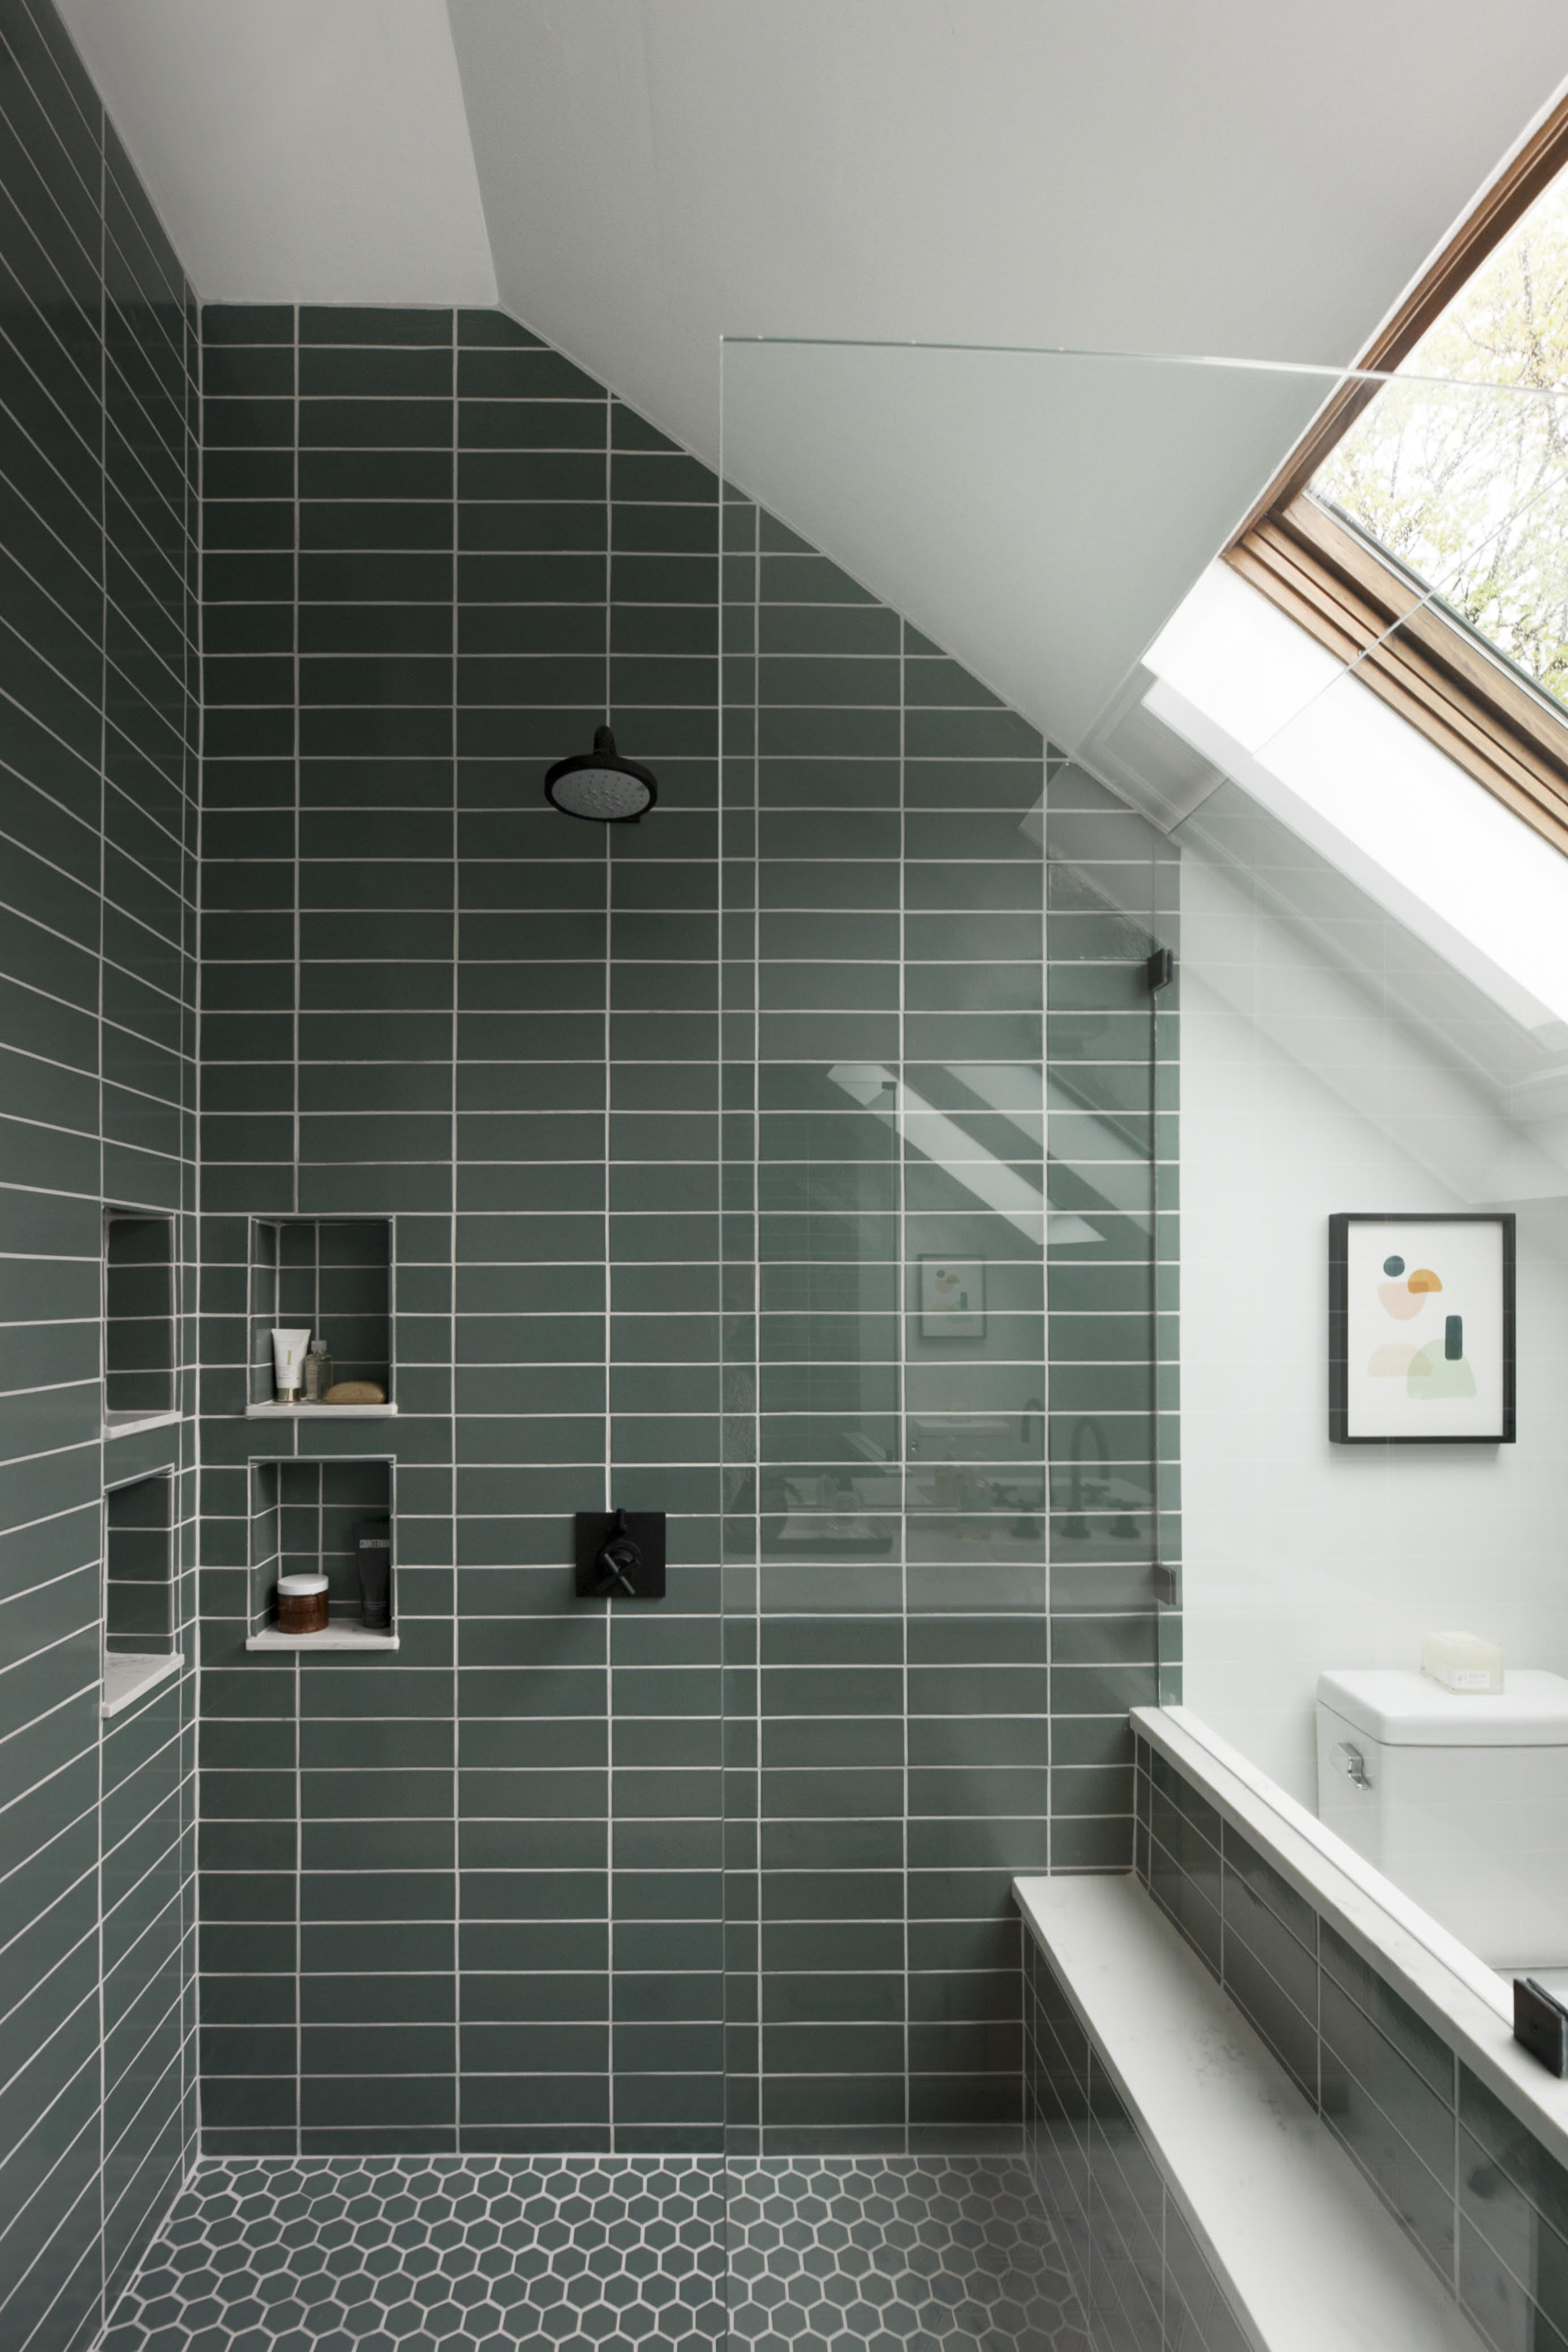 2018_img_residential_RIGHTS_haywoodmade_interiors_petra_ford_paper_and_plate_photography_bathroom_shower_surround_pan_floor_straight_stack_flagstone_3x9_ceramic_glazed_edge_trim_mosaic_222_hex_FC251851_3.jpg?mtime=20190607155420#asset:456452